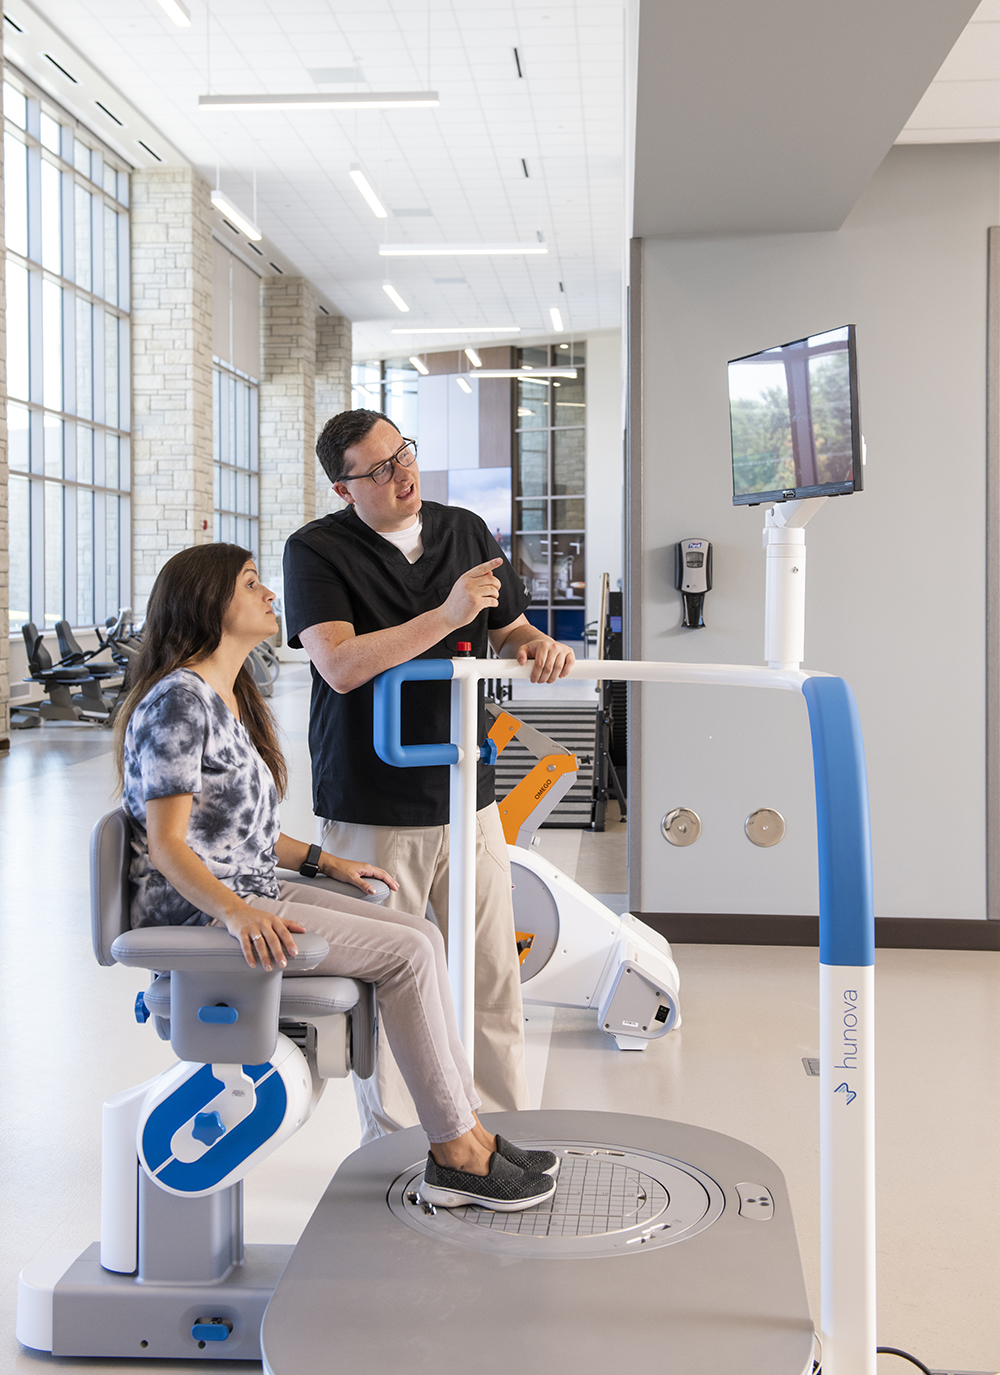 Hunova®: This advanced robot enables patients to work on posture control, body position, and balance. It is also used to evaluate the fall risk of patients recovering from cognitive impairment.